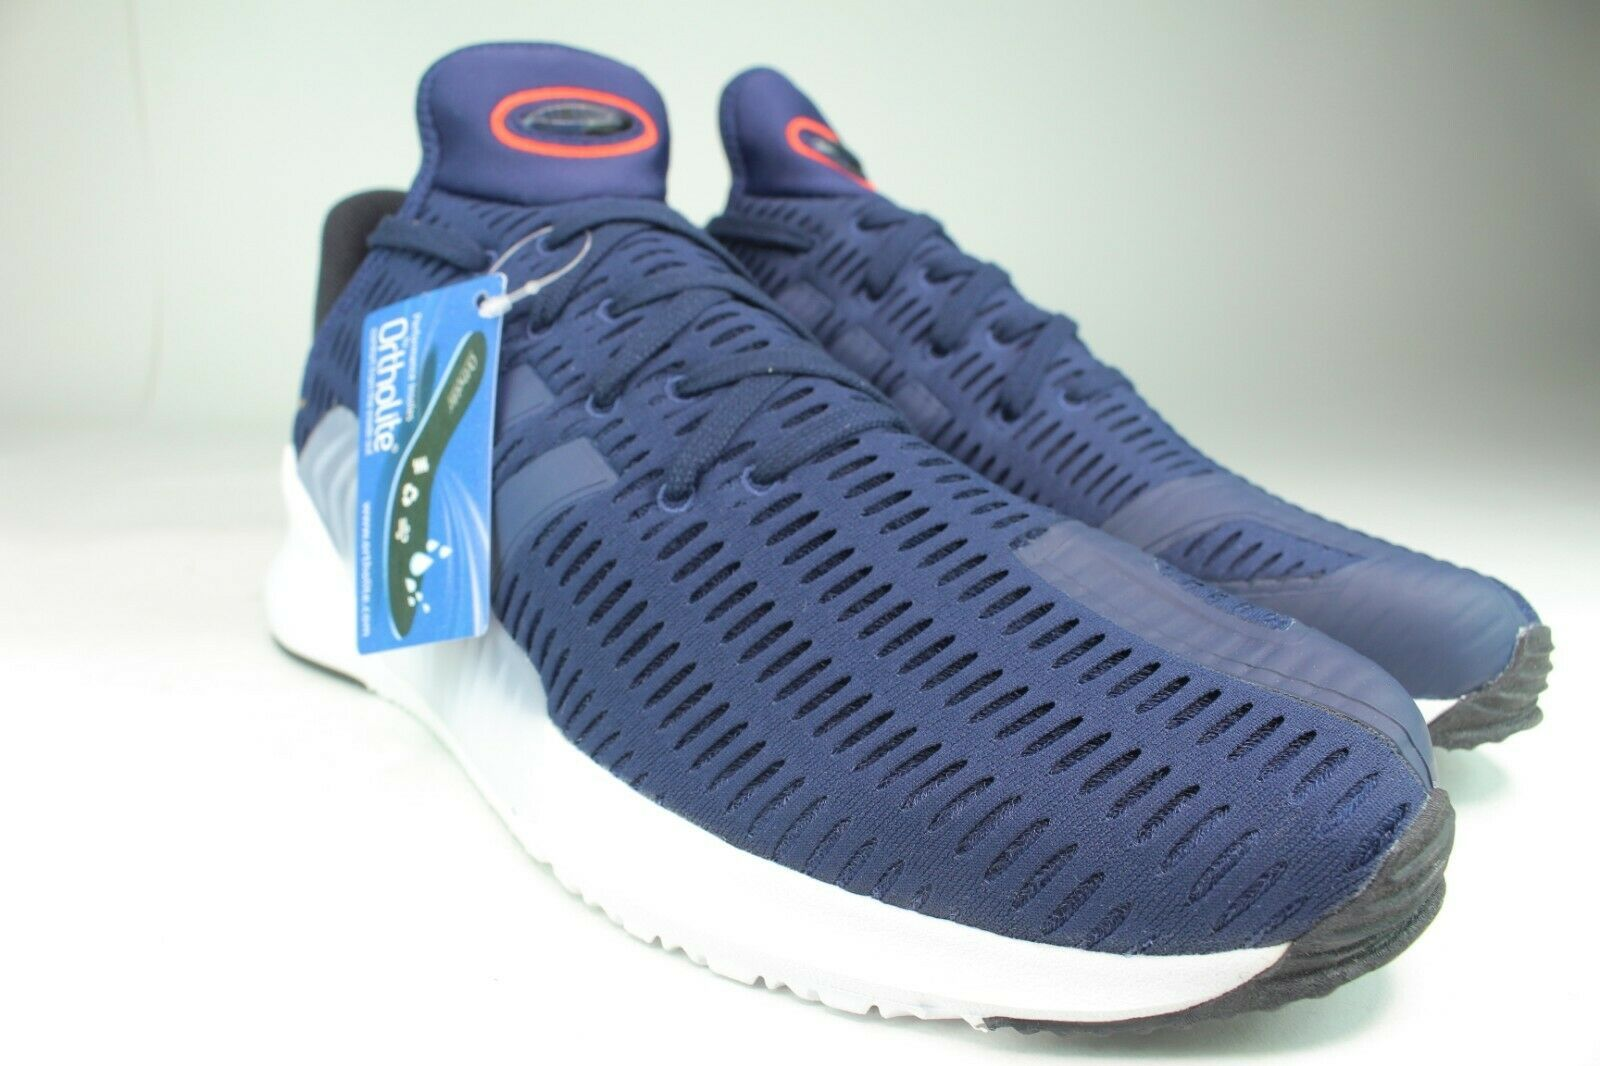 on feet at best value outlet store sale Adidas Climacool 02/17 CG3342 Men Size 13.0 and 39 similar items